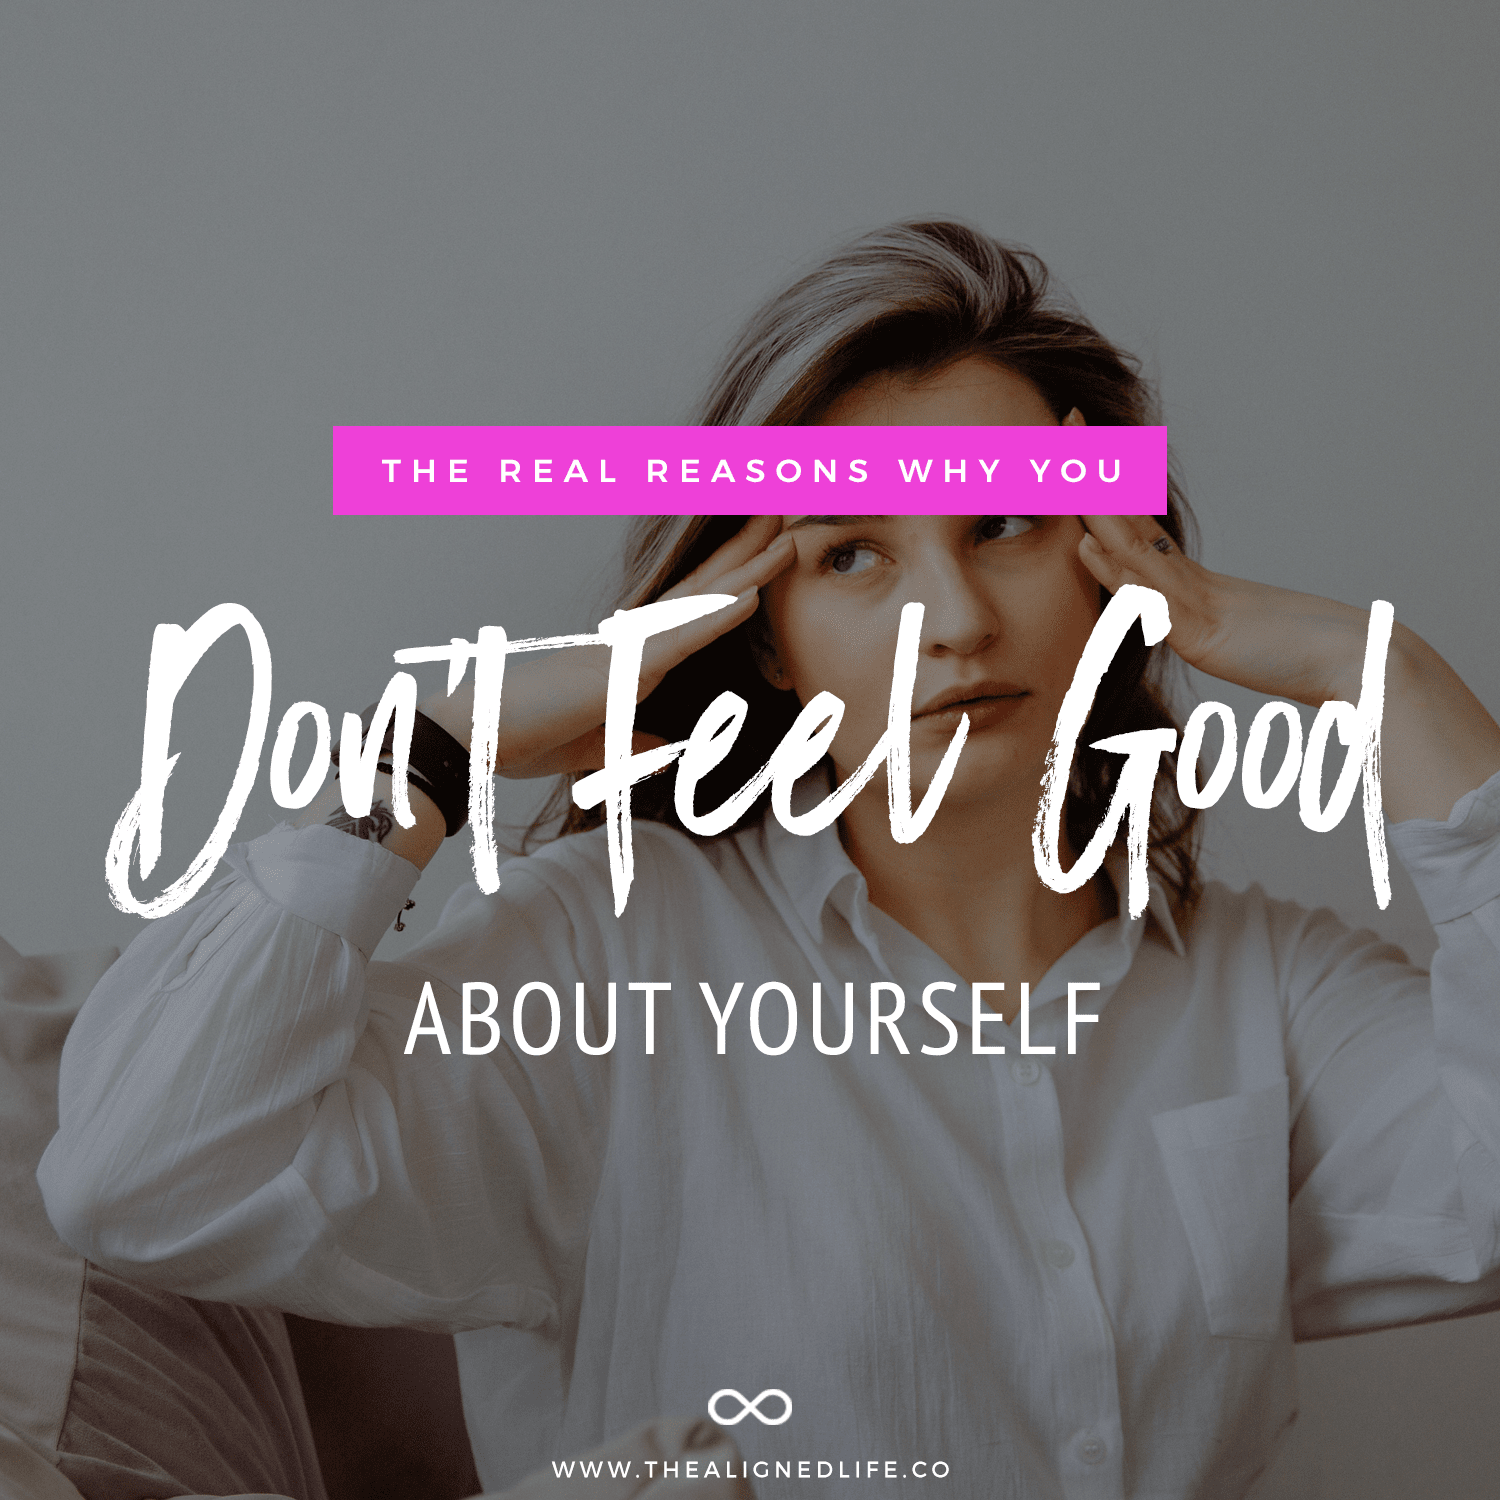 The Real Reasons Why You Don't Feel Good About Yourself